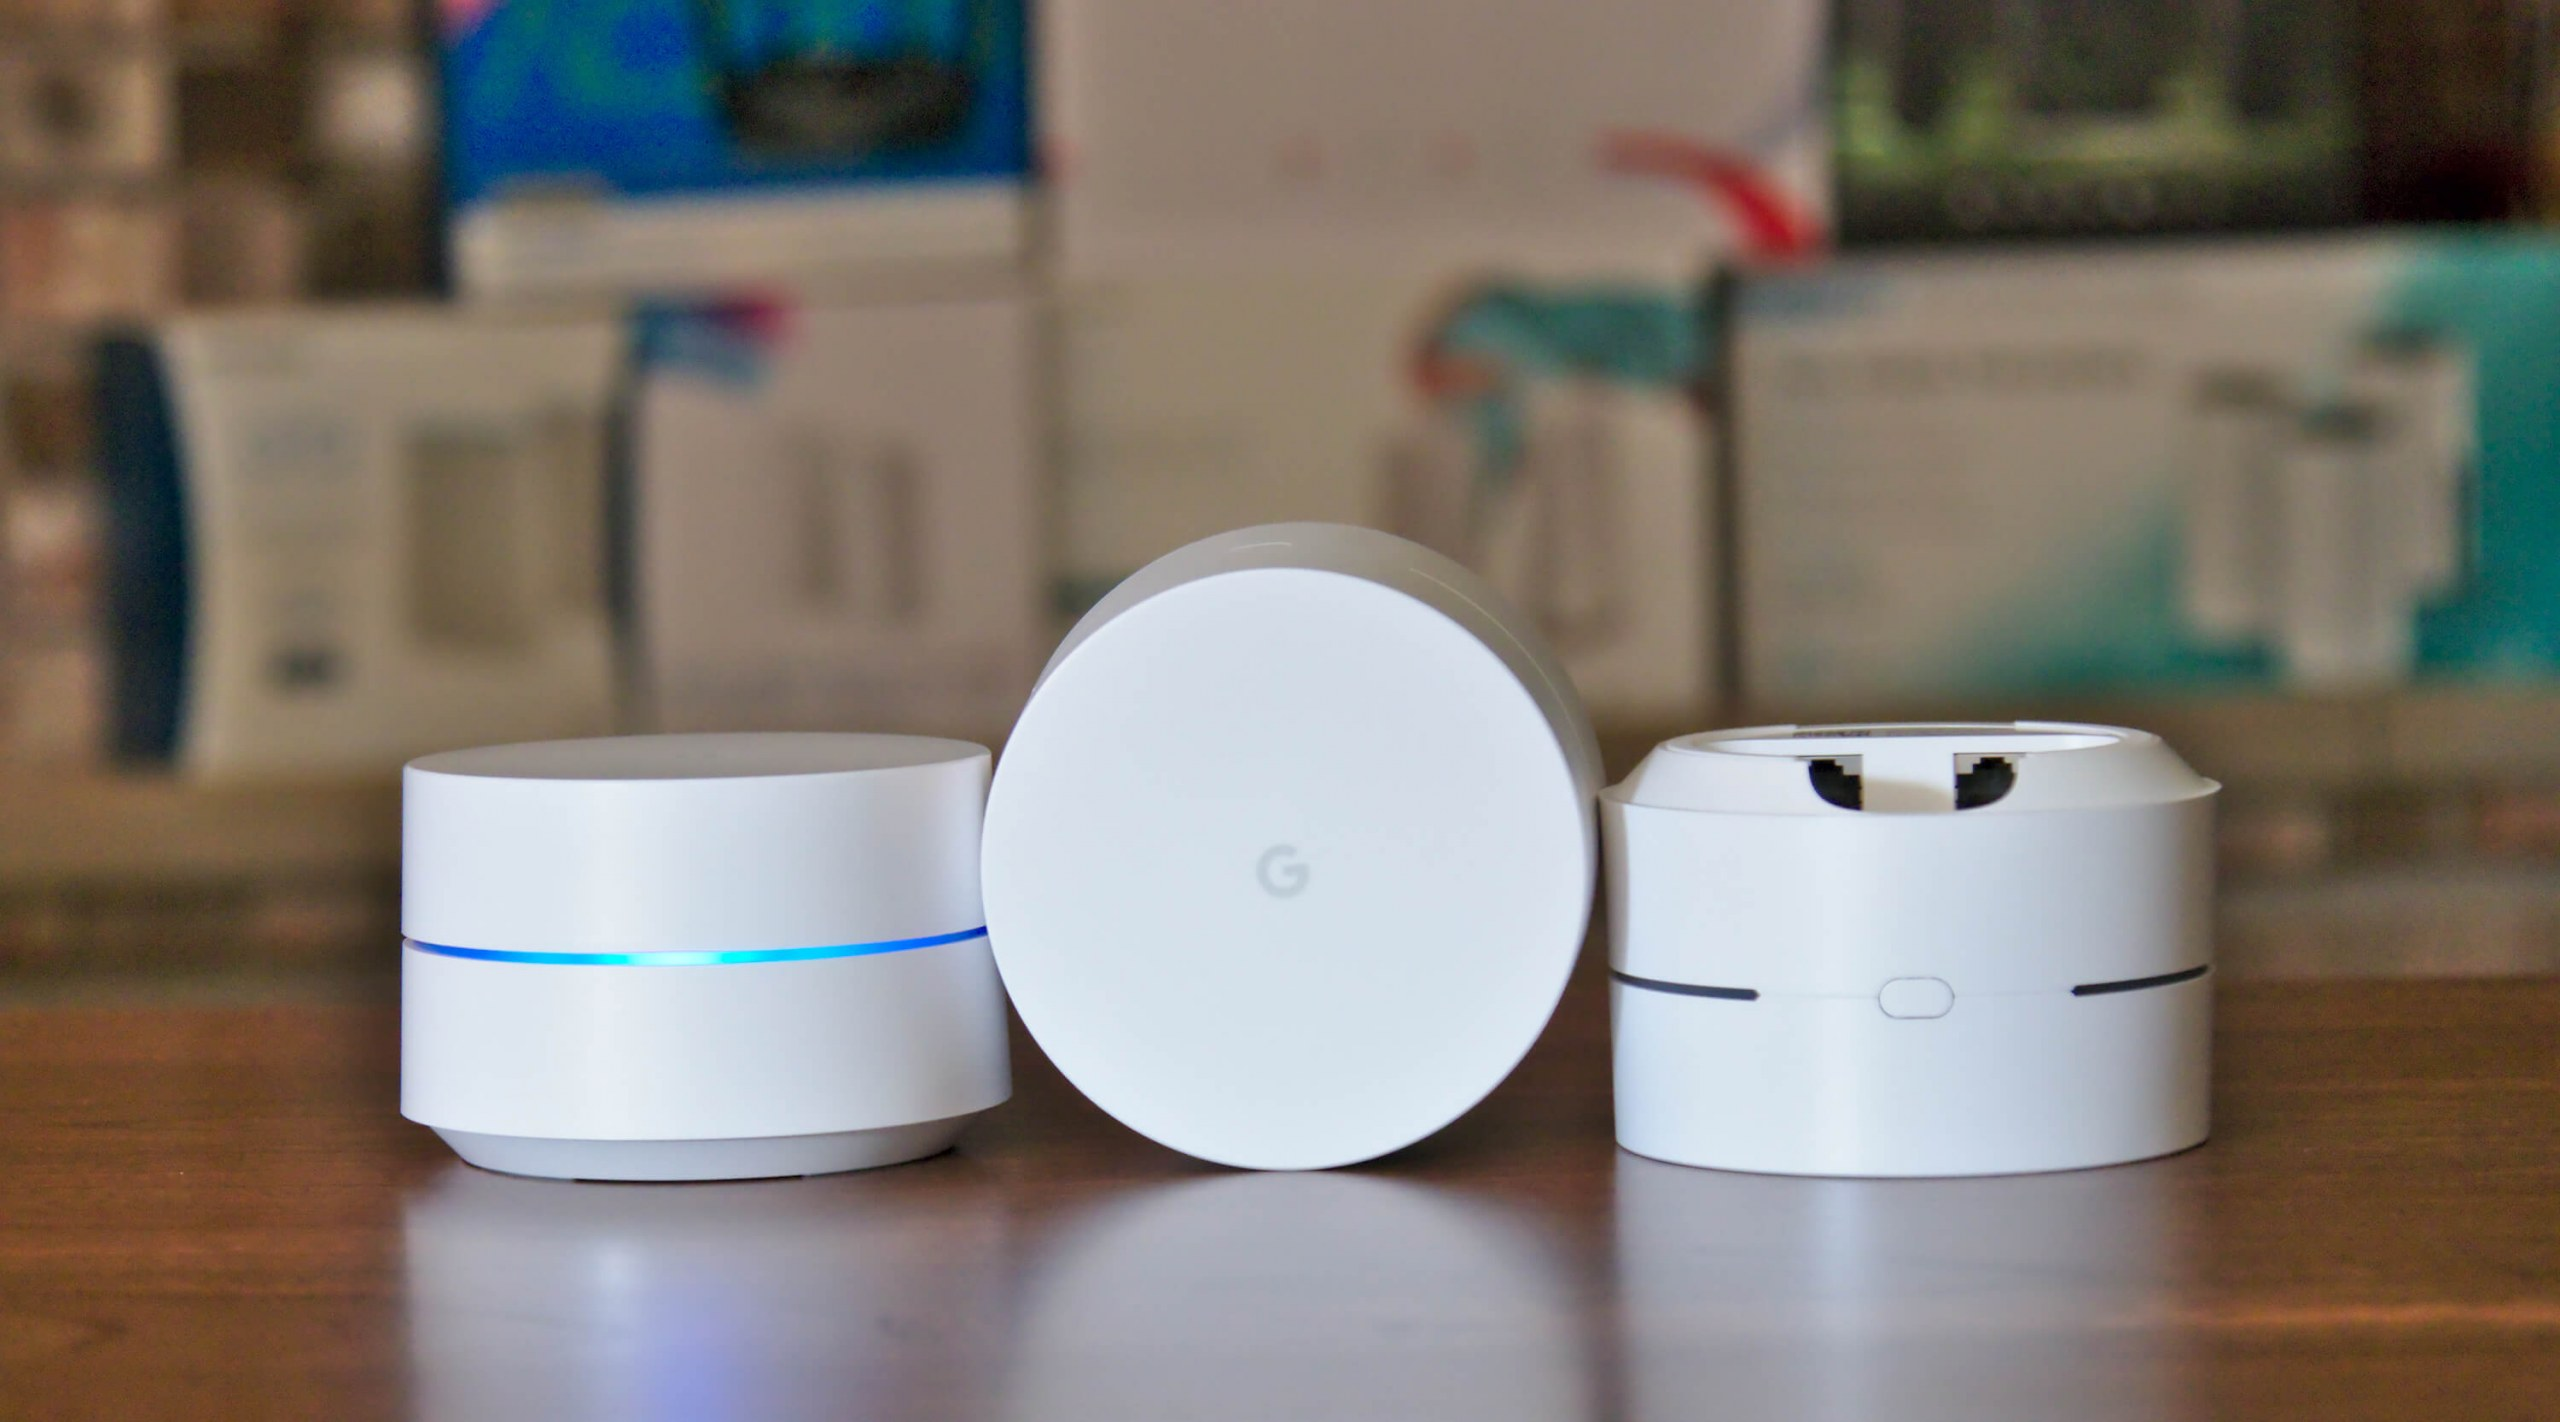 Mesh Wi-Fi System Roundup 2019: Are these new systems worth